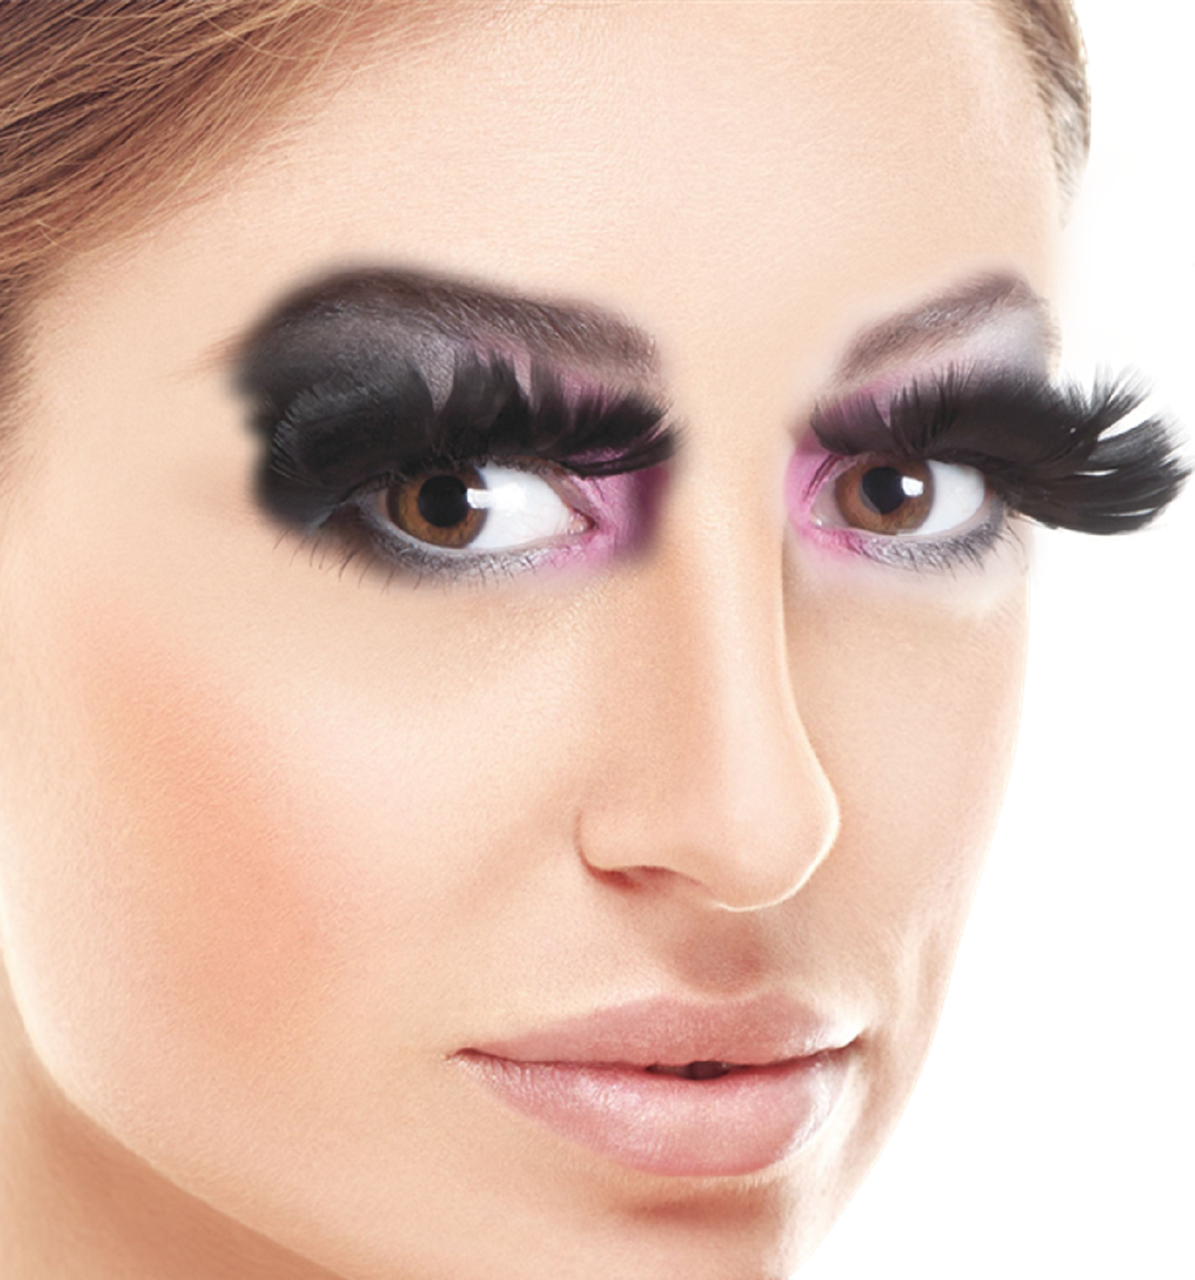 ba335d51cdd Ladies Long Black Feather Eyelashes - Fancy Me Limited